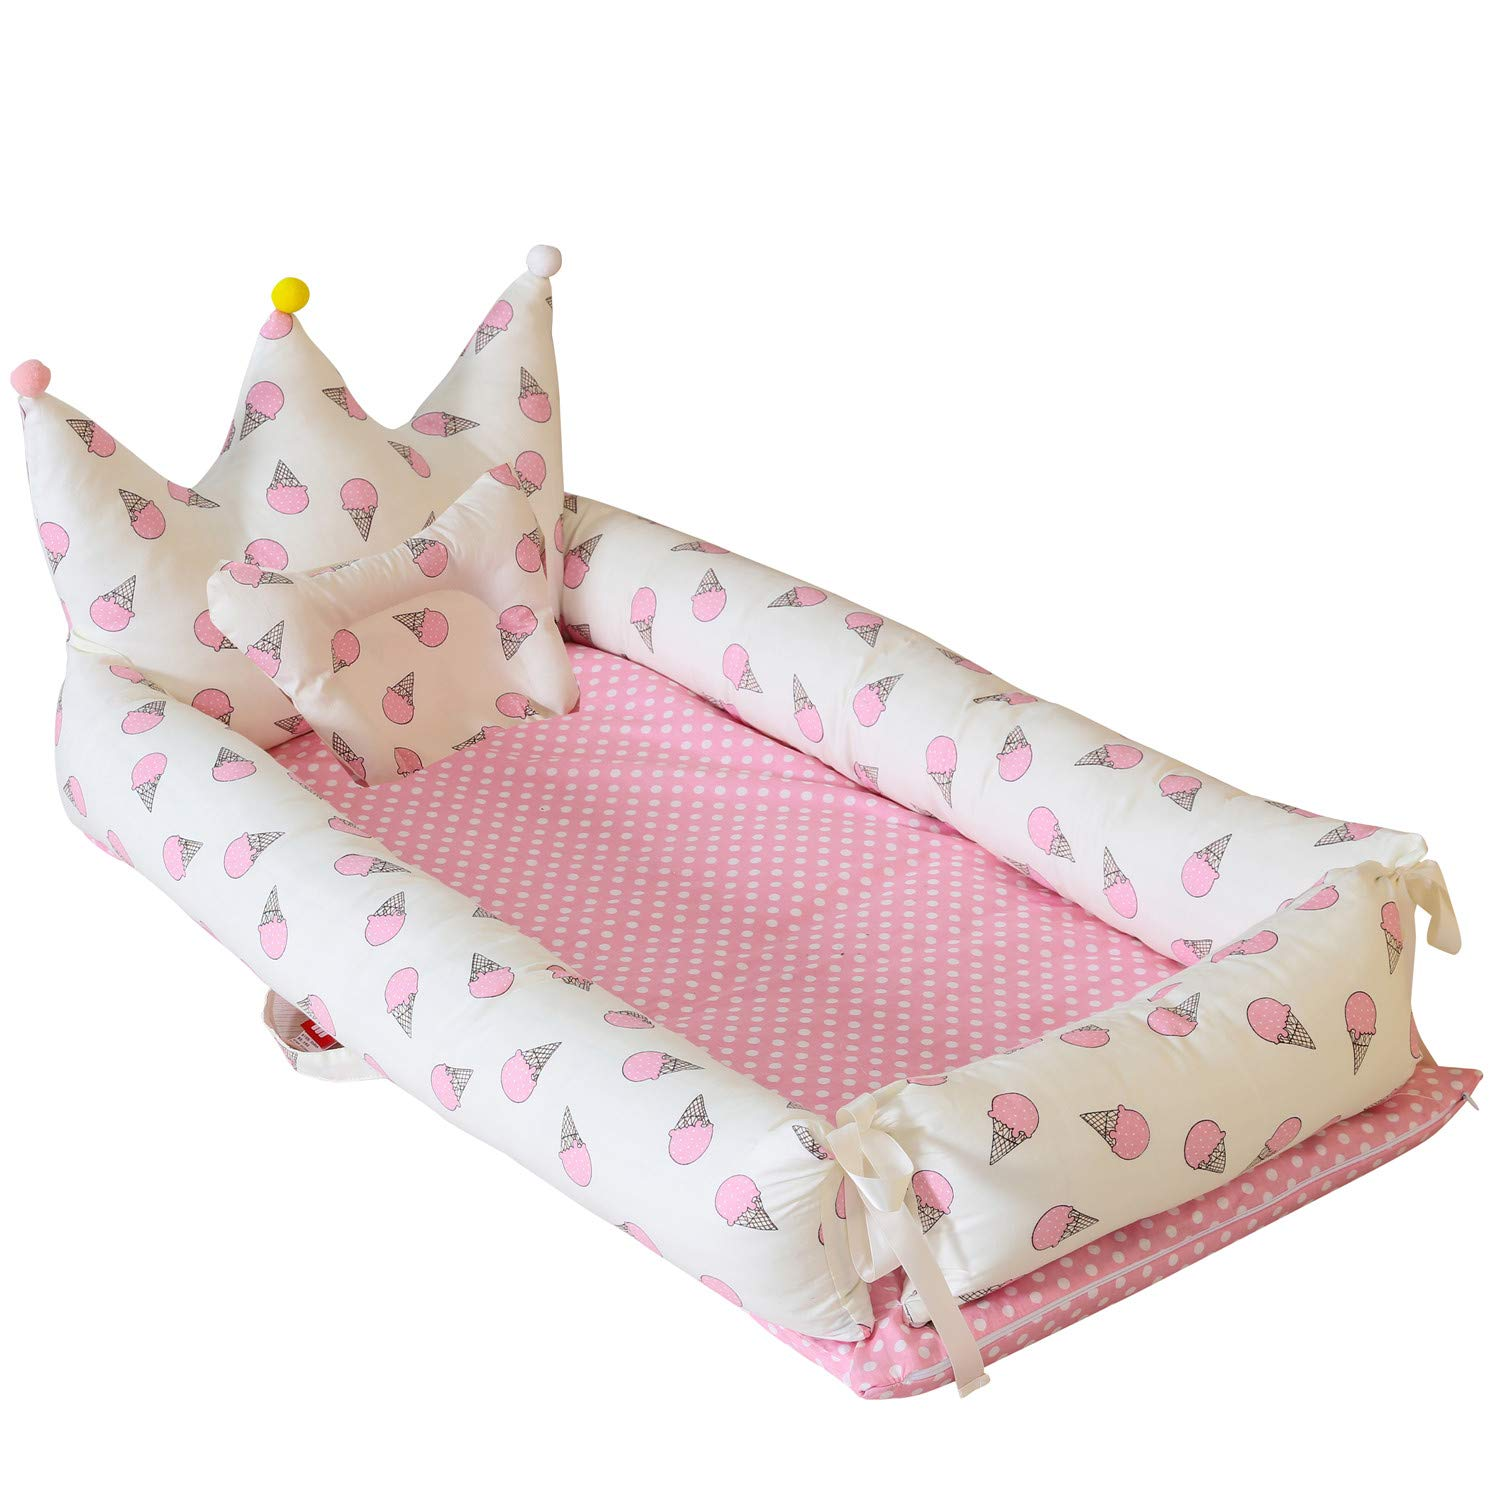 Abreeze Baby Bassinet for Bed -Ice-Cream-Pink Baby Lounger - Breathable & Hypoallergenic Co-Sleeping Baby Bed - 100% Cotton Portable Crib for Bedroom/Travel by Abreeze